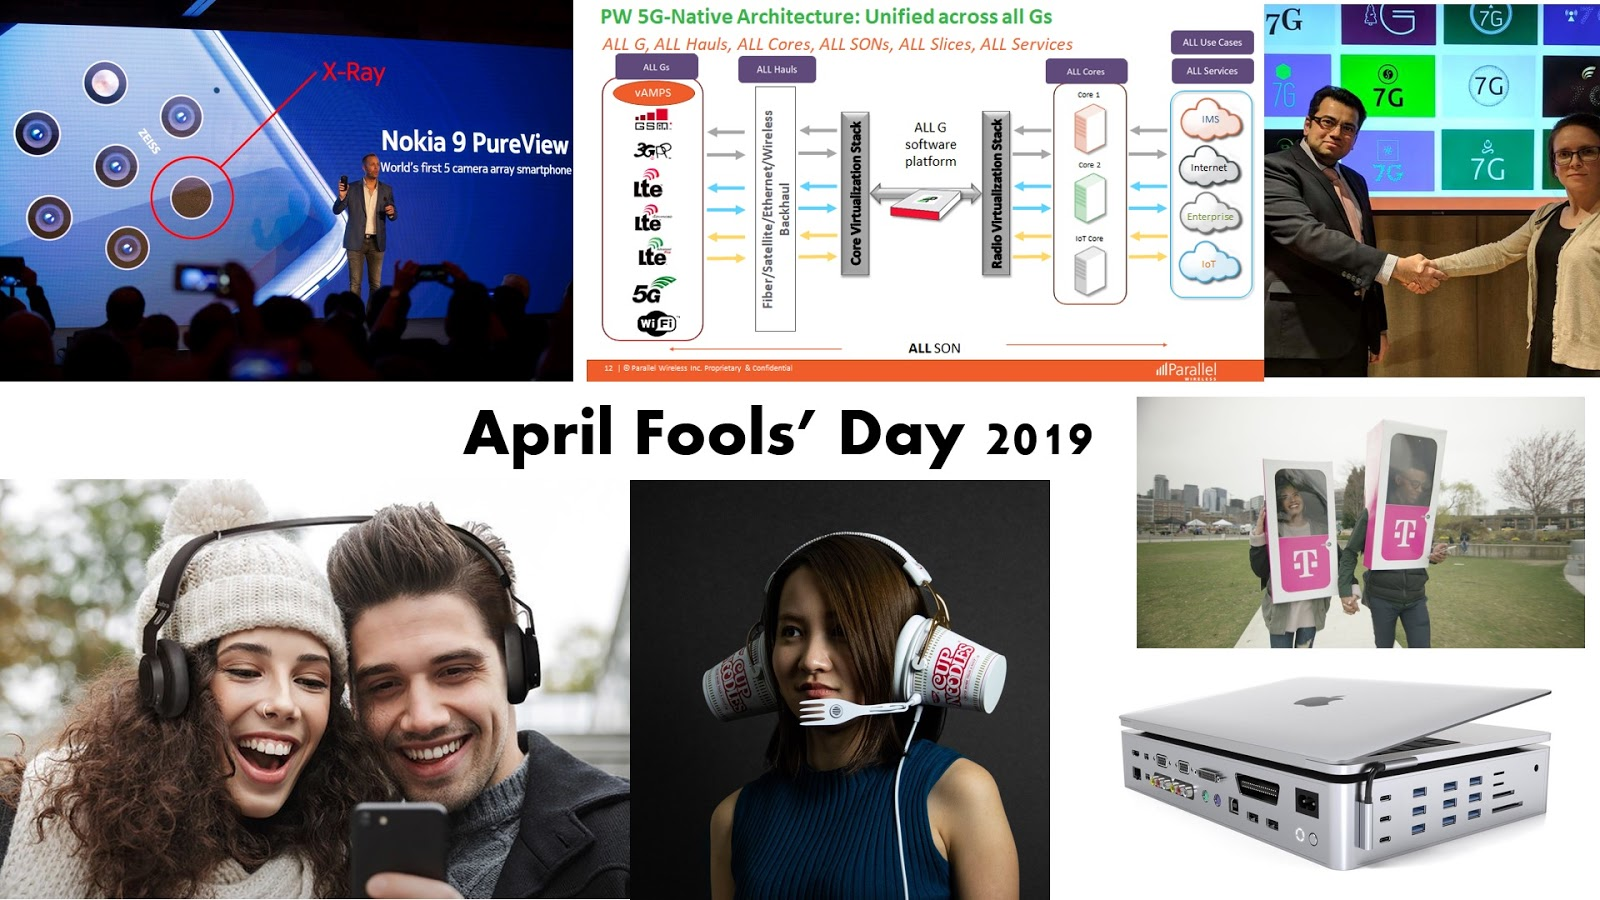 The 3G4G Blog: Some interesting April Fools' Day 2019